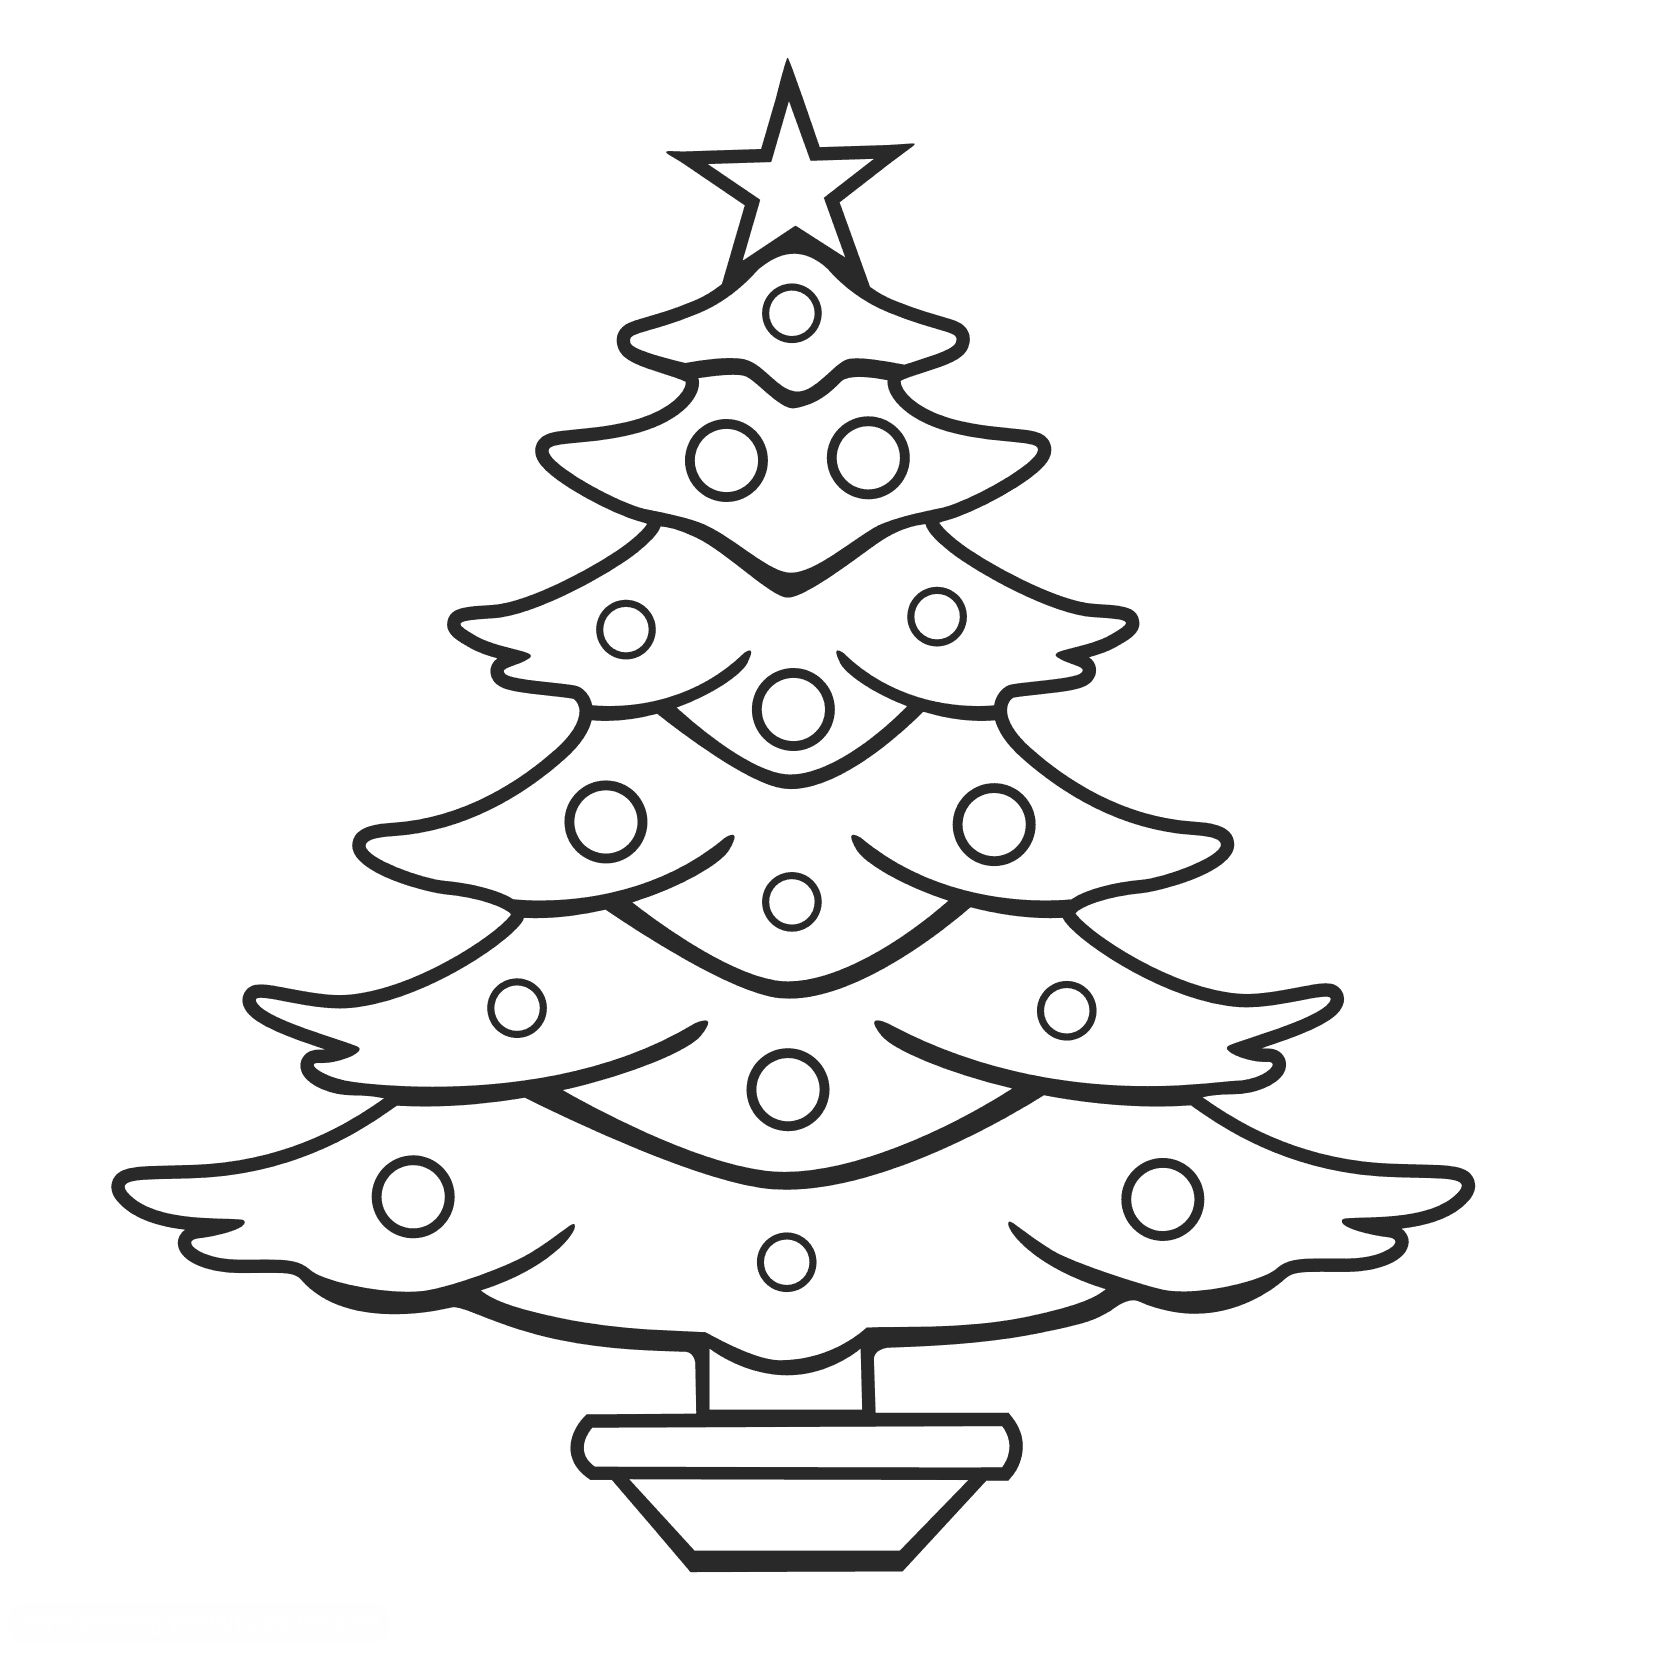 Christmas Tree Coloring Pages Getcoloringpages Gallery Free Gallery Of Noted Coloring Picture A Tree Pages Unknown Resolutions Printable